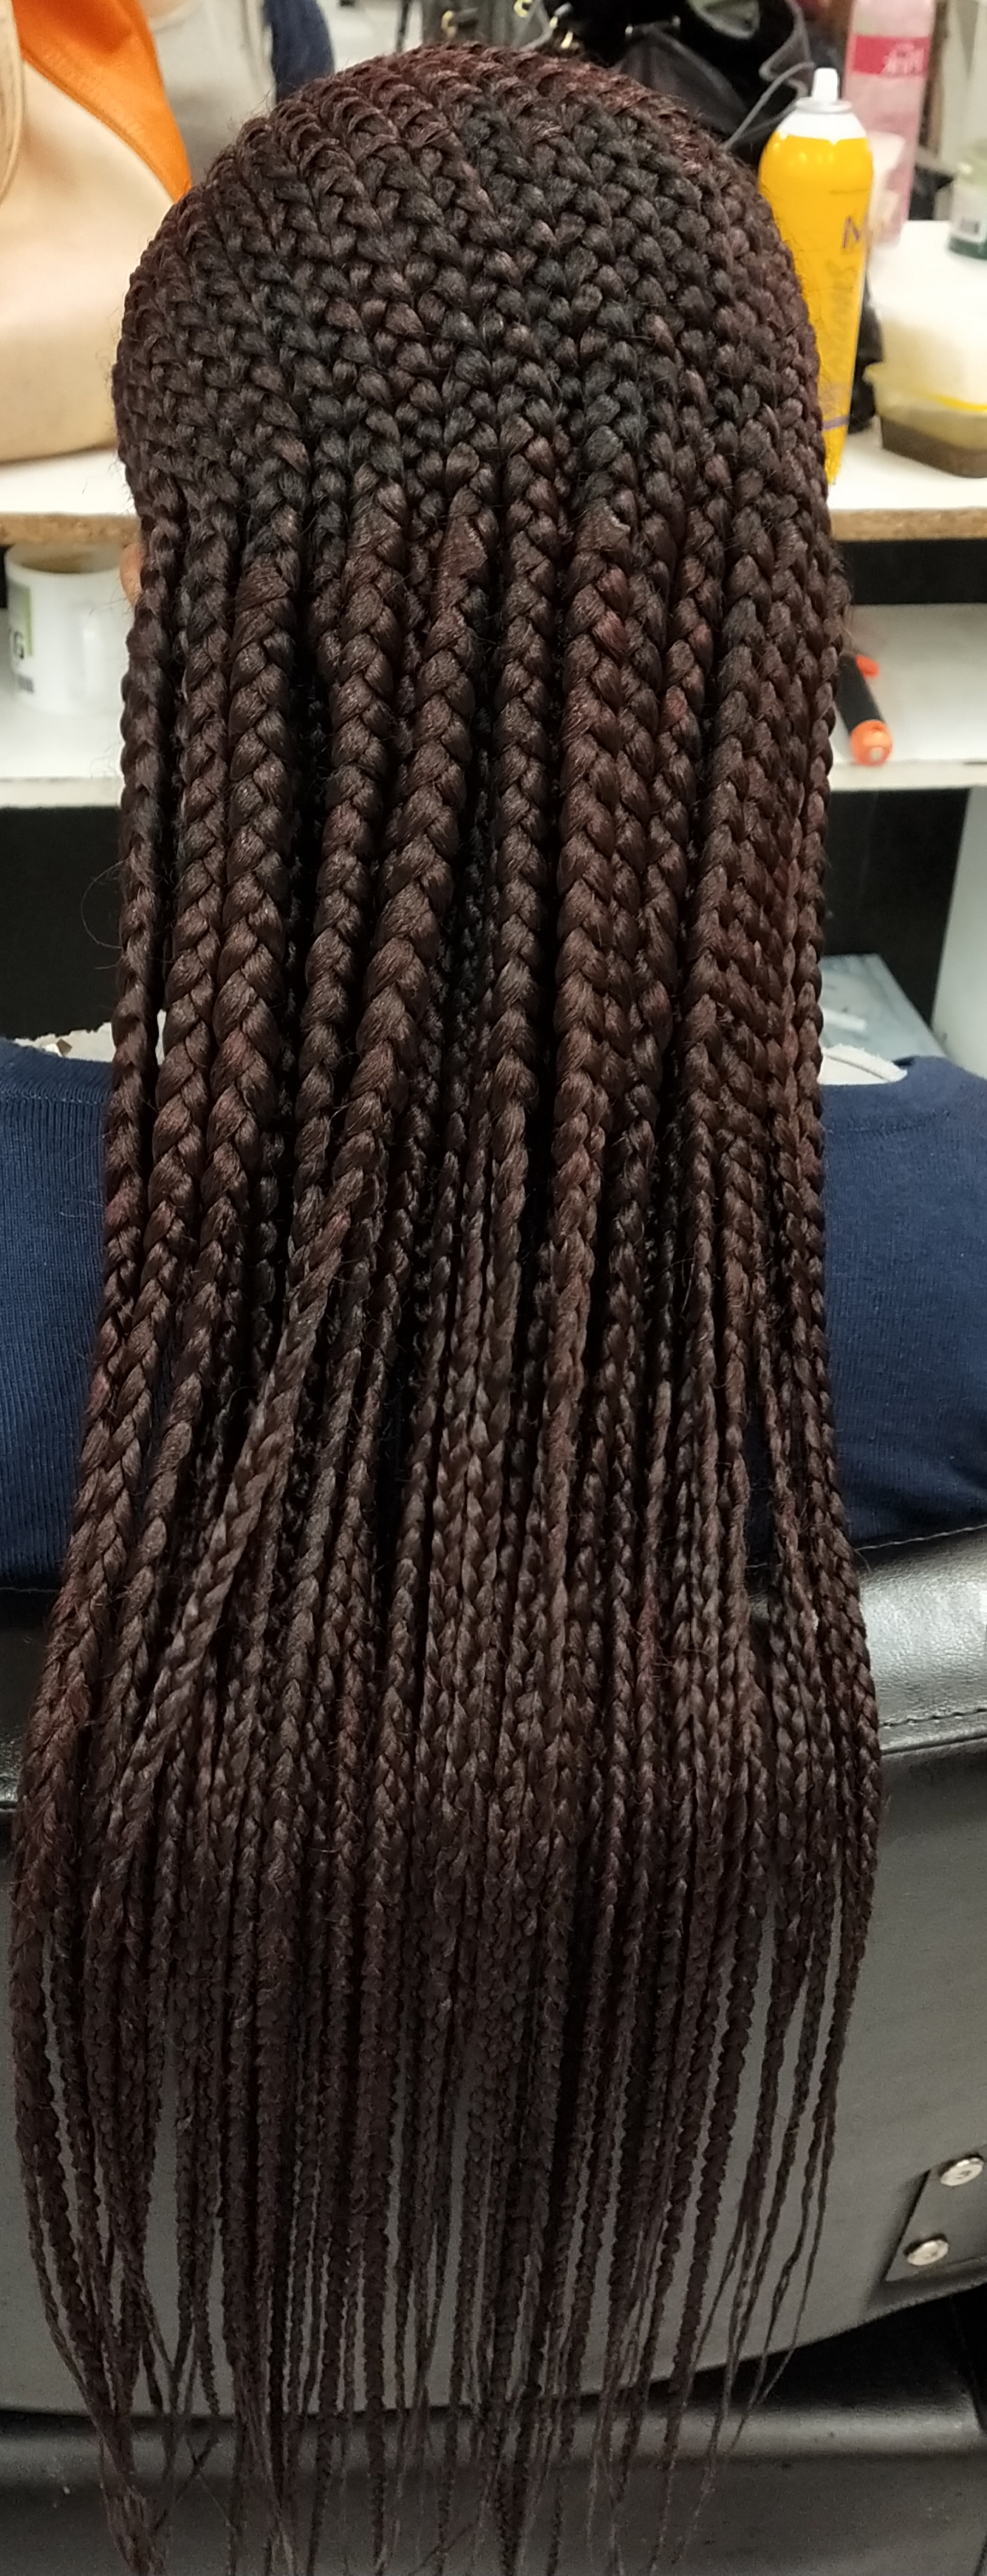 salon de coiffure afro tresse tresses box braids crochet braids vanilles tissages paris 75 77 78 91 92 93 94 95 UMUXKXXU